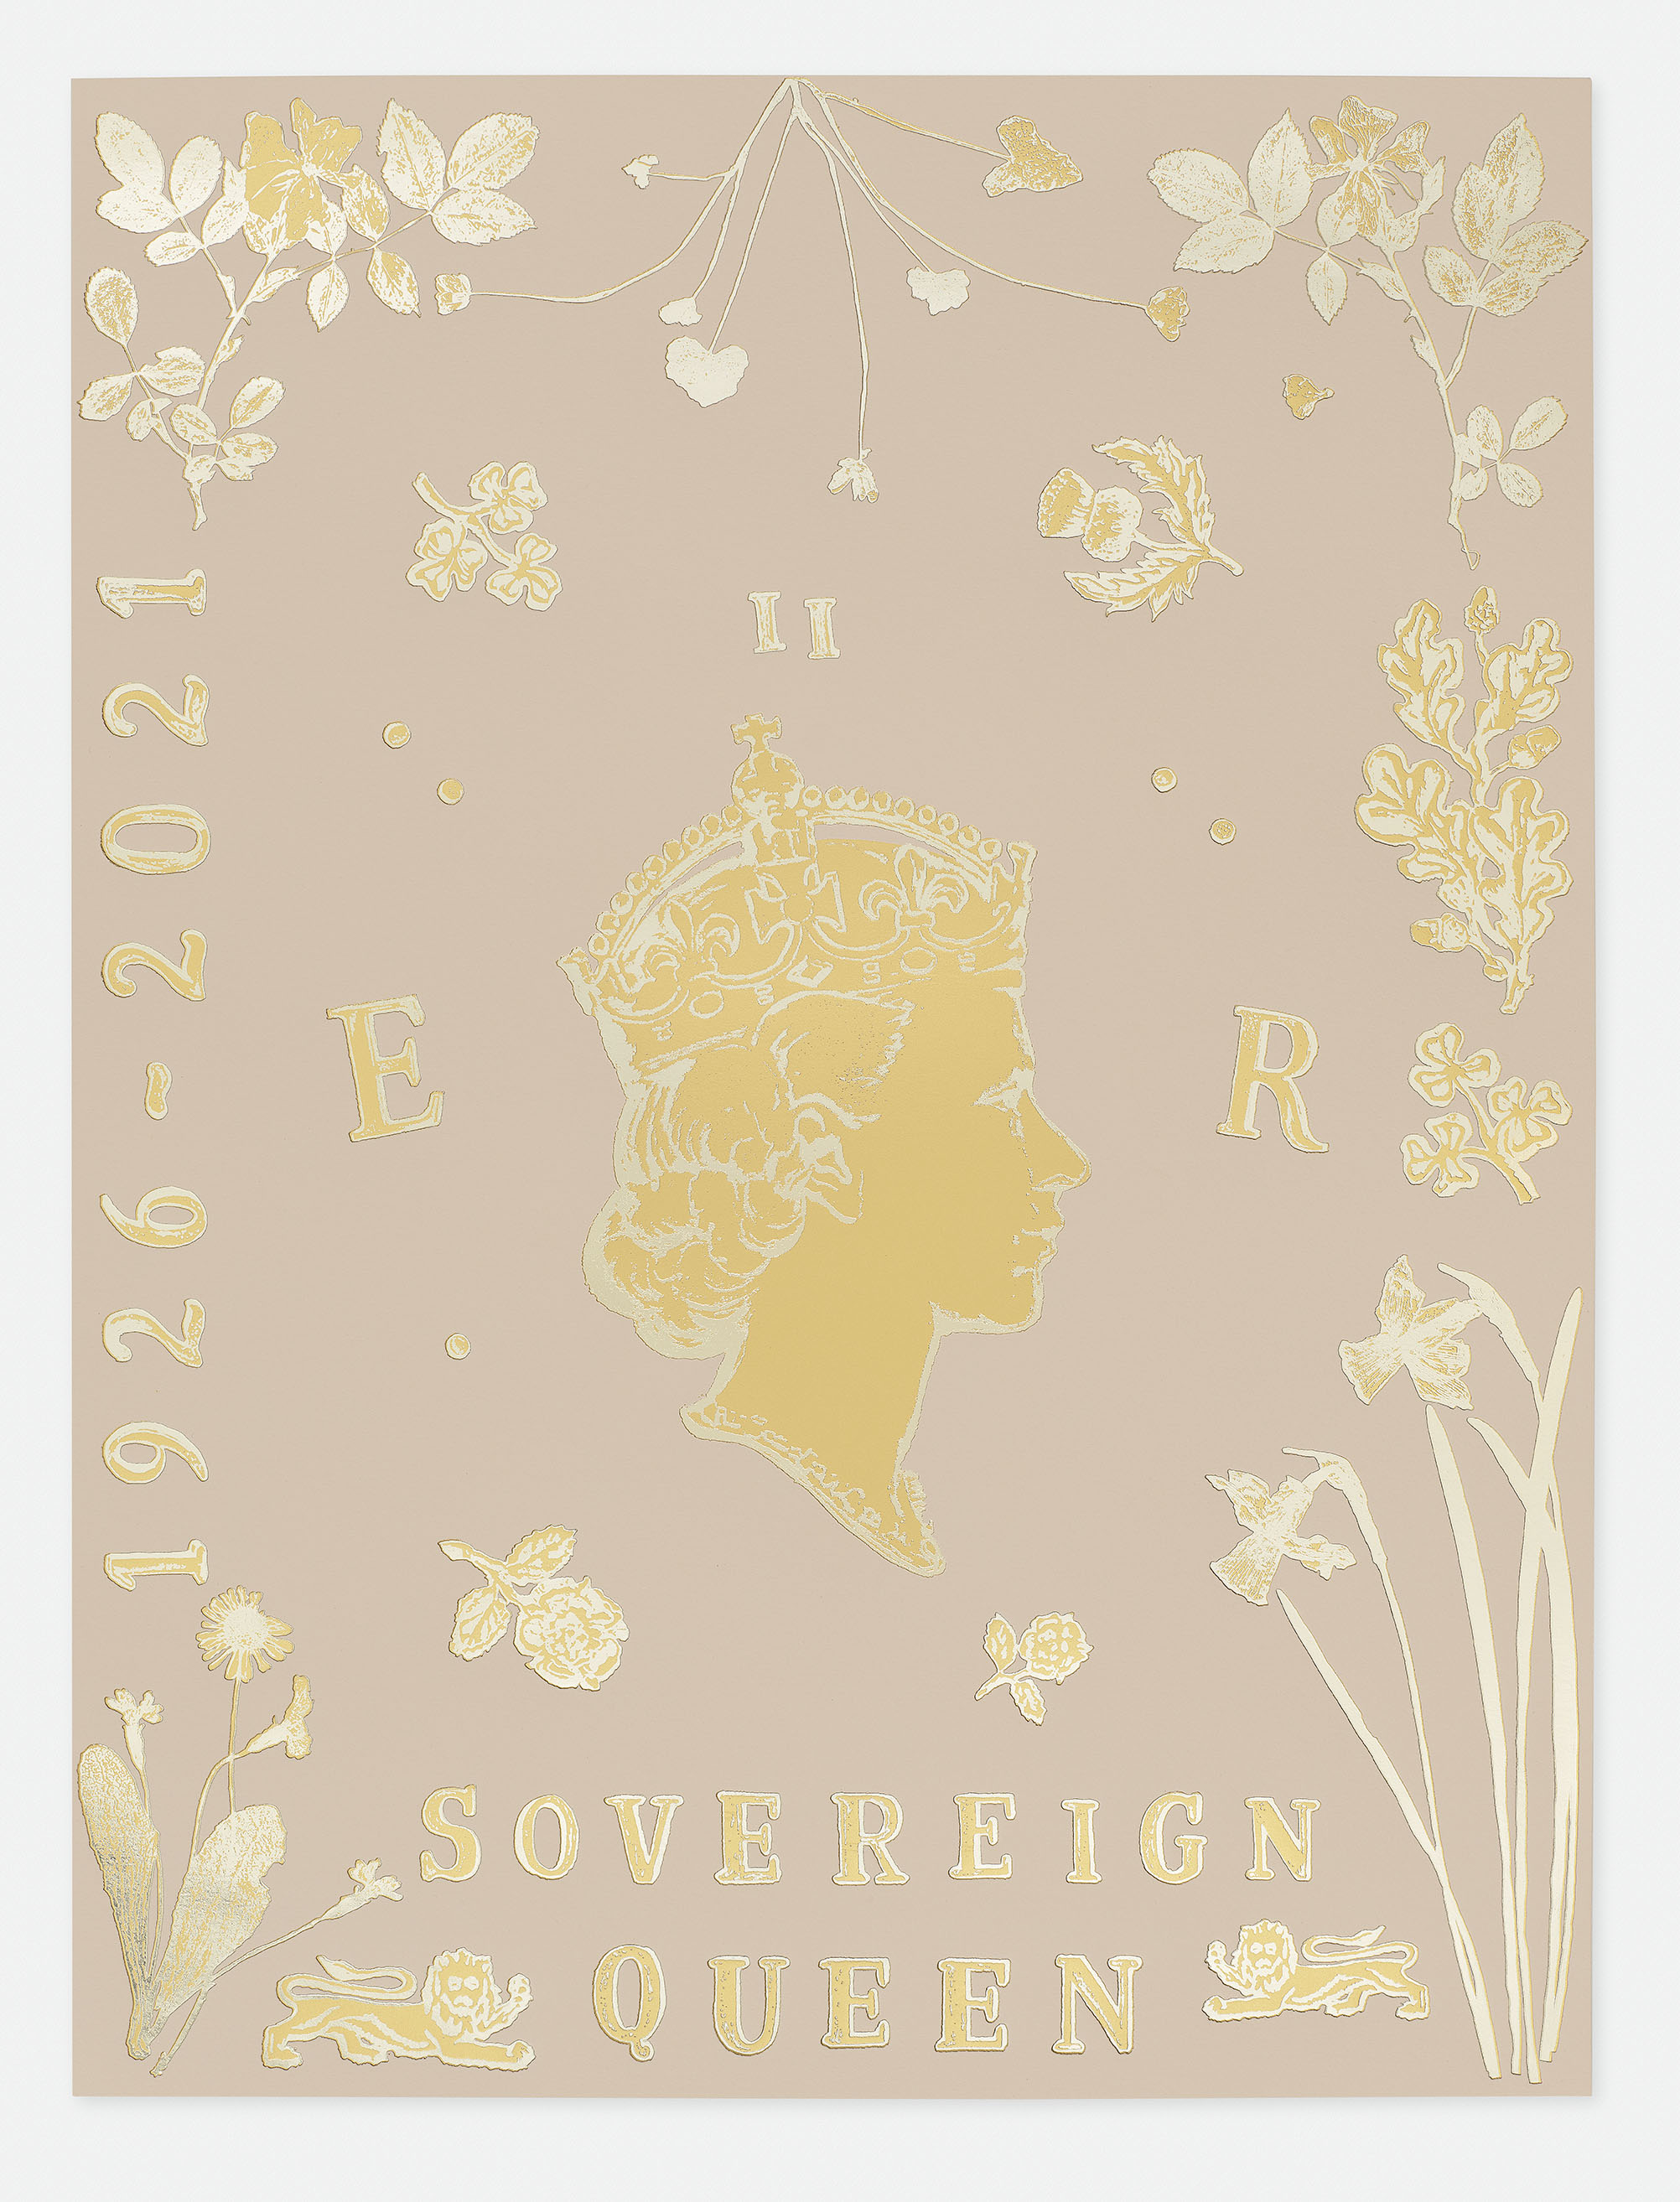 """Commission for The Queen's 95th Birthday Limited Edition Print """"Sovereign Queen""""."""